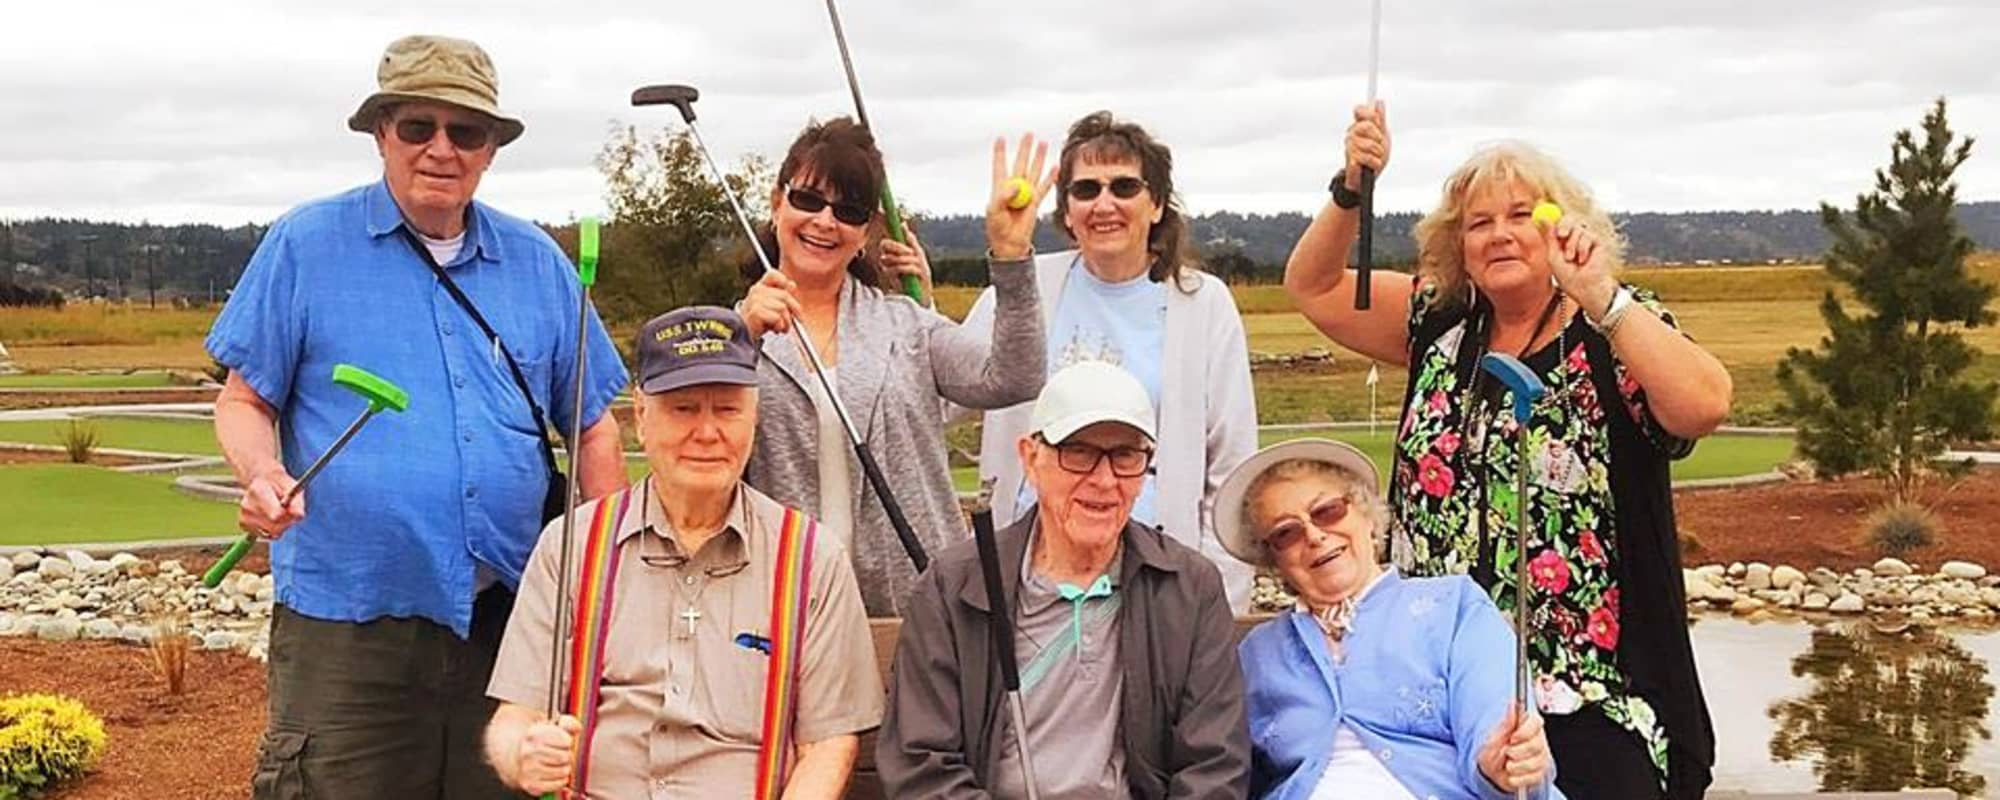 Seniors playing mini golf together at The Creekside in Woodinville, Washington